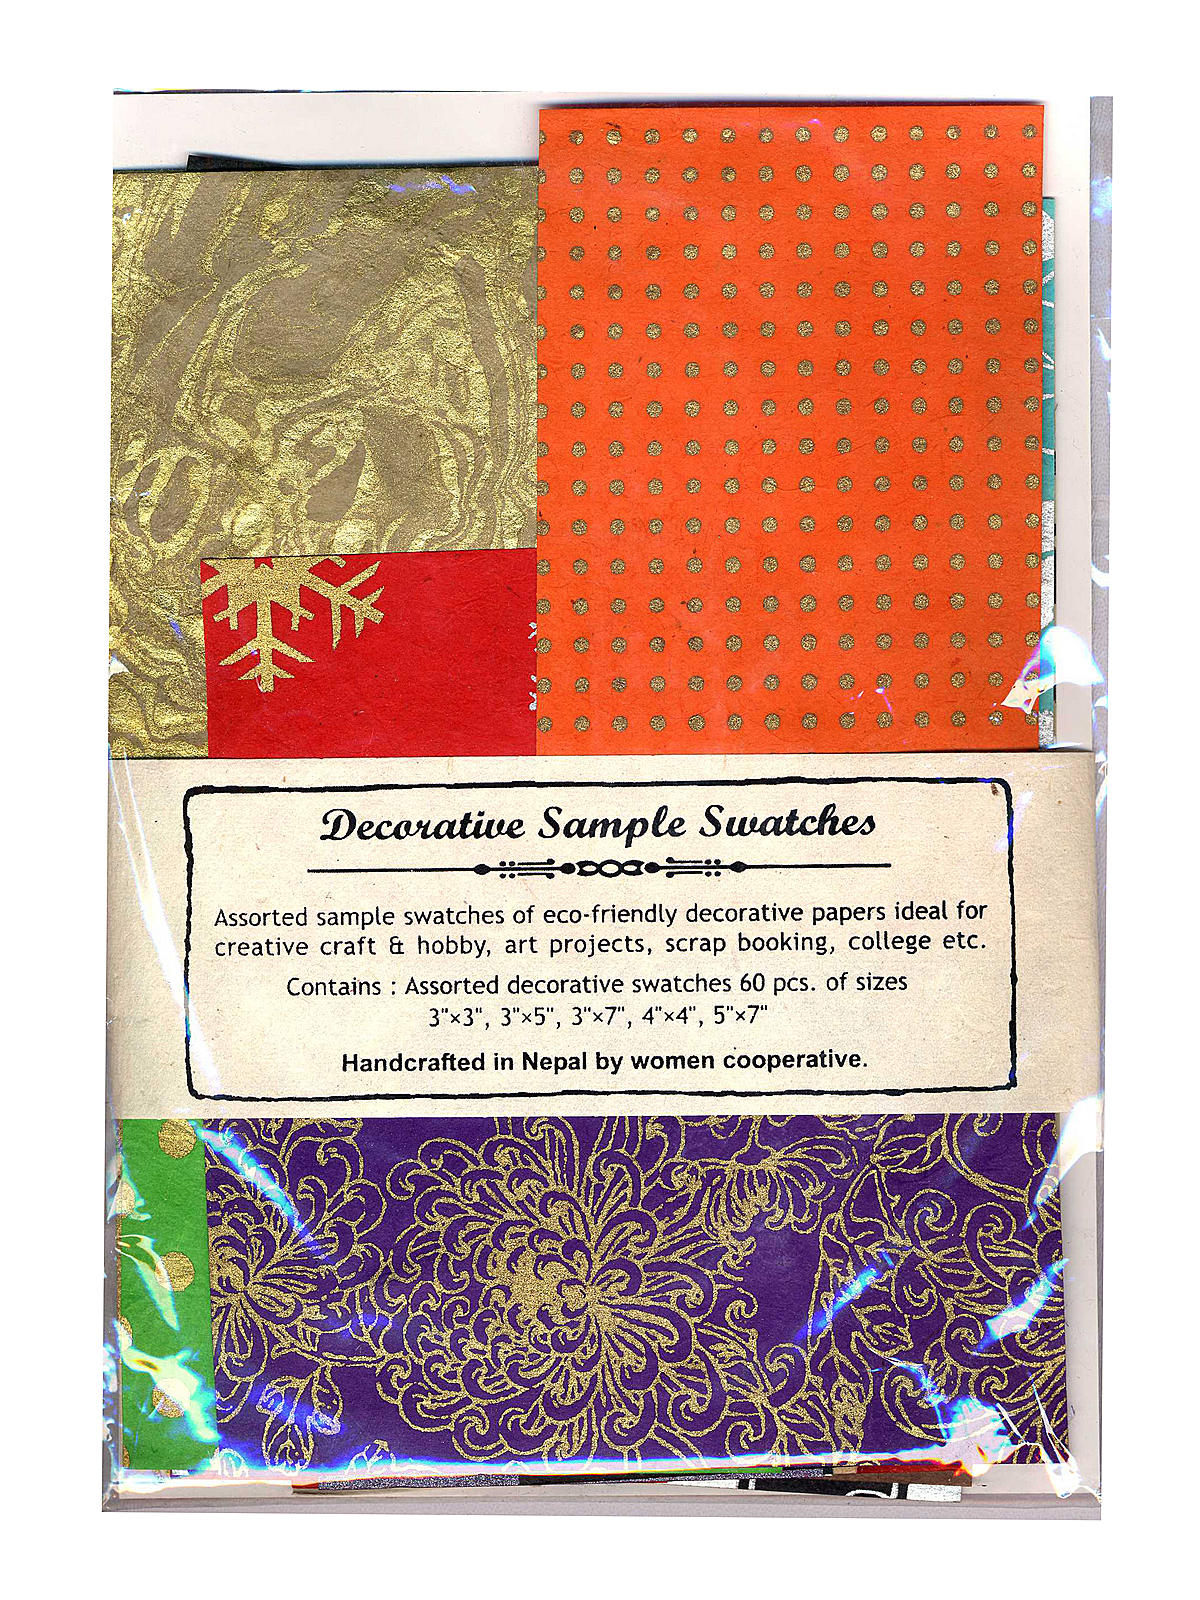 Decorative Paper Sample Swatches